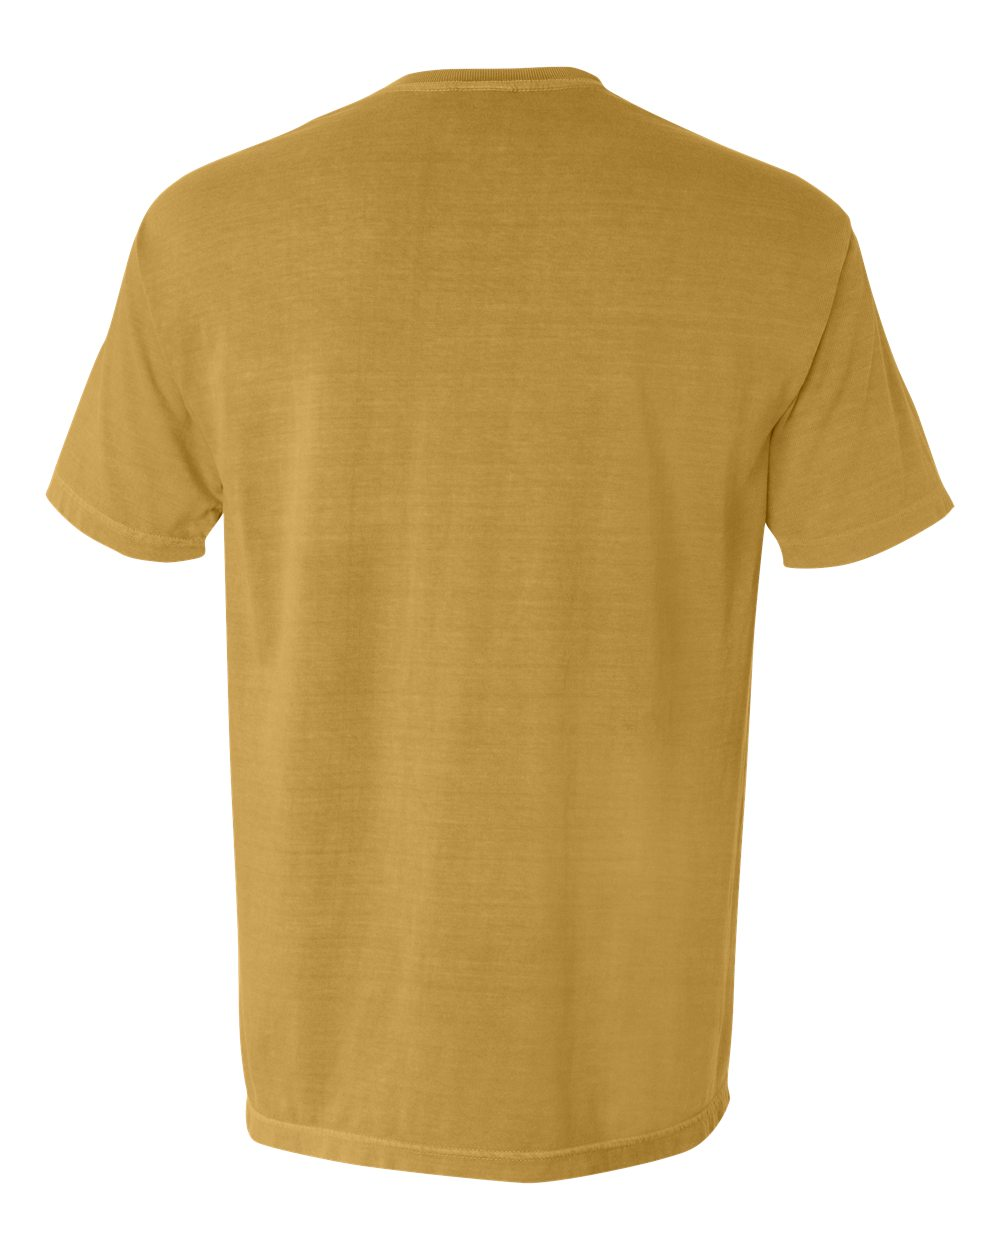 Comfort-Colors-Men-039-s-6-1-oz-Garment-Dyed-Pocket-T-Shirt-6030CC-S-3XL thumbnail 64